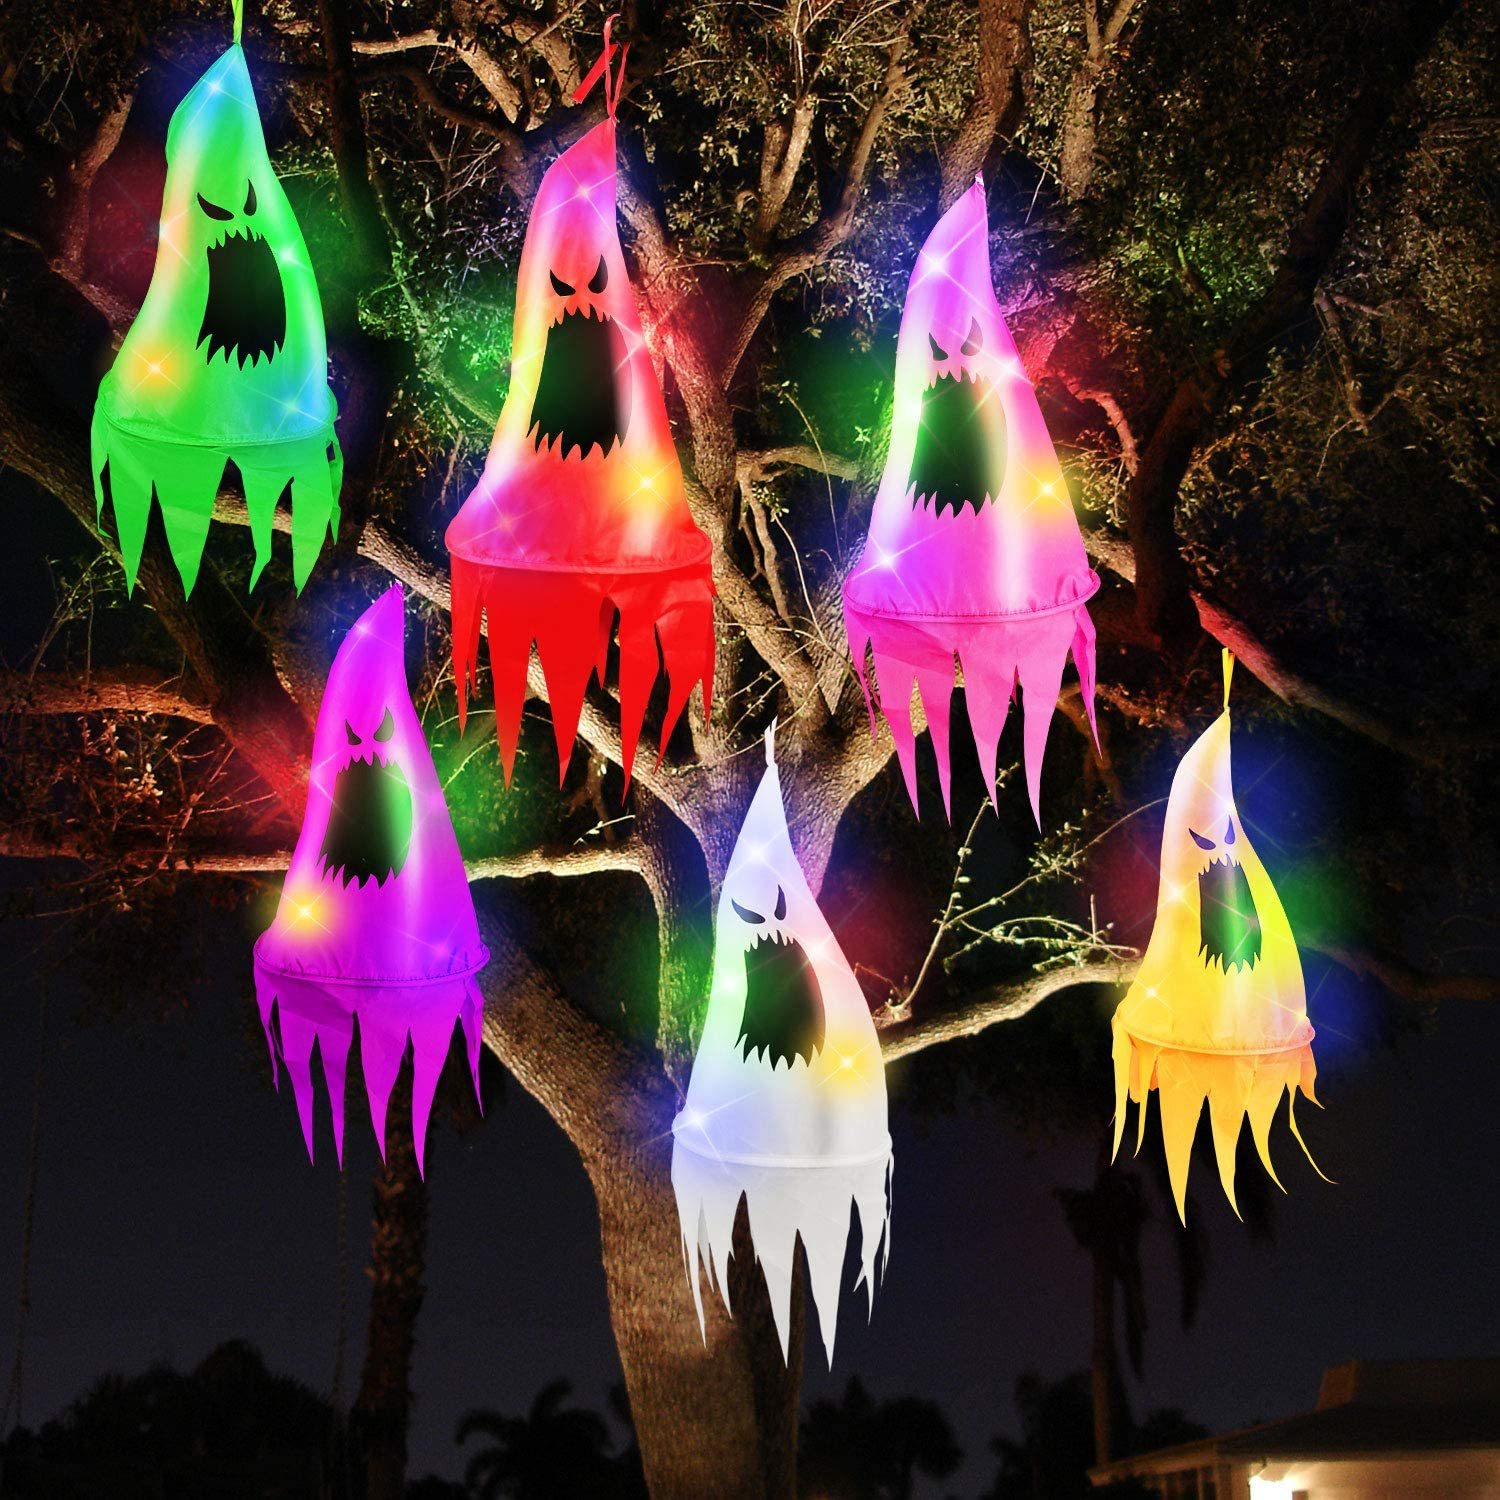 TURNMEON 6Pcs Halloween Ghost Hanging Decorations with Witch Hat Shapes 10LED 3.2Ft/Piece Colored String Lights Battery Operated Halloween Decorations Outdoor Indoor Yard Tree Garden Party Decor